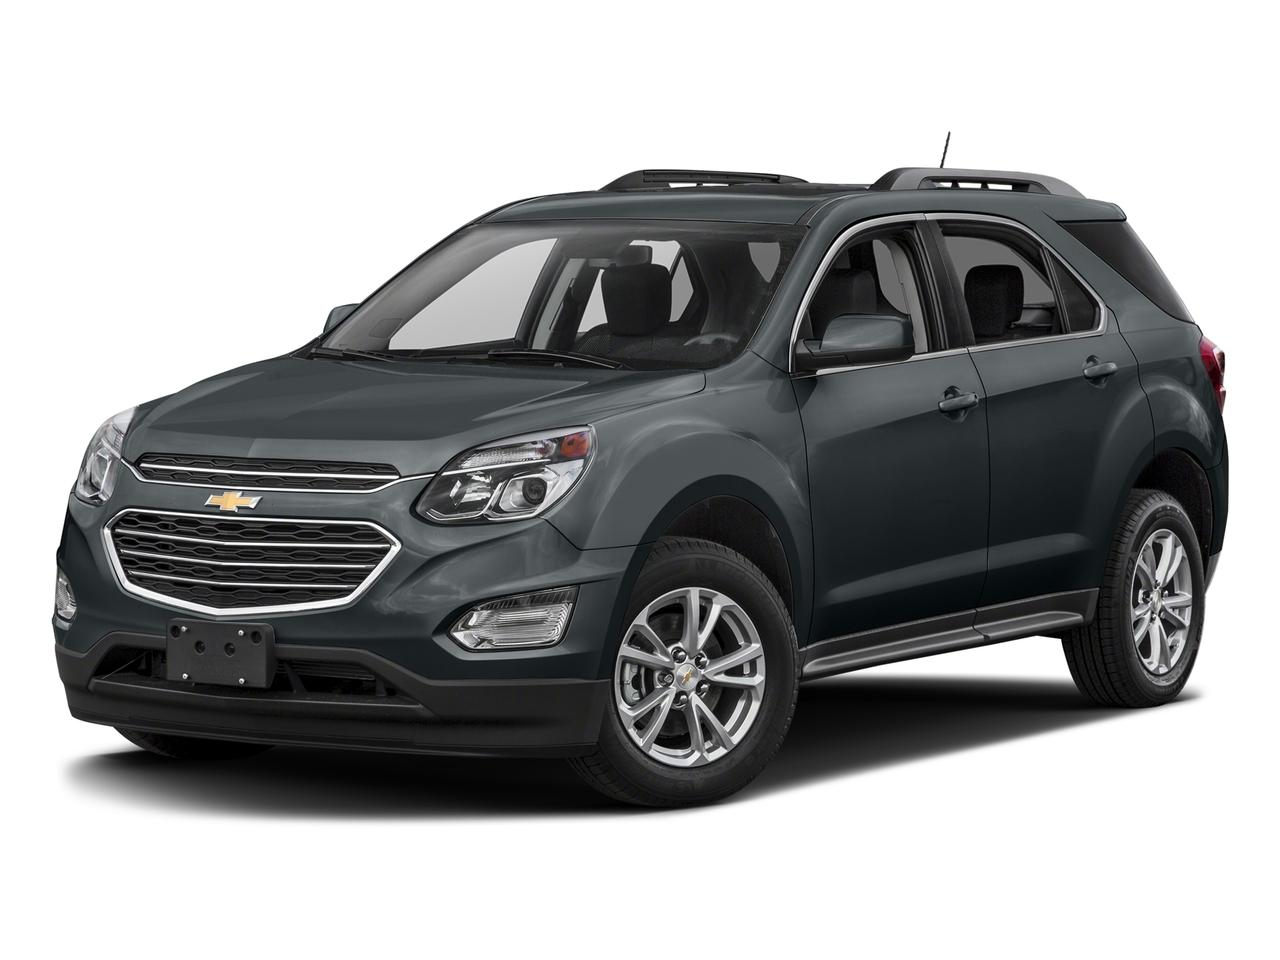 2017 Chevrolet Equinox Vehicle Photo in Ennis, TX 75119